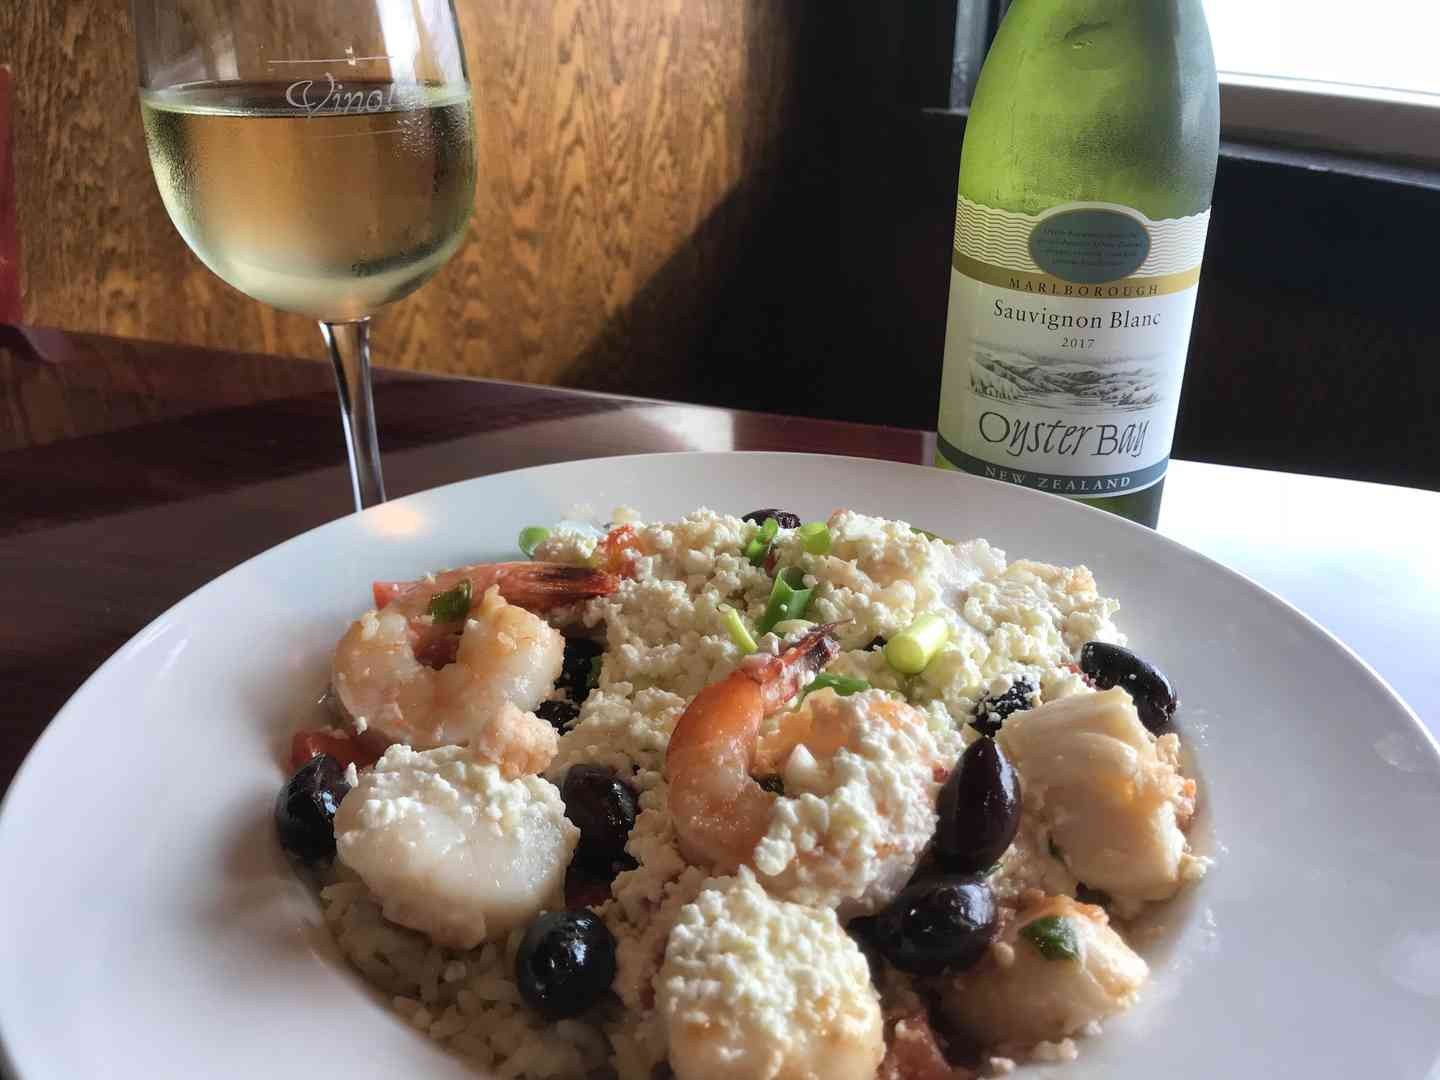 Shrimp dinner with a glass of wine and wine bottle